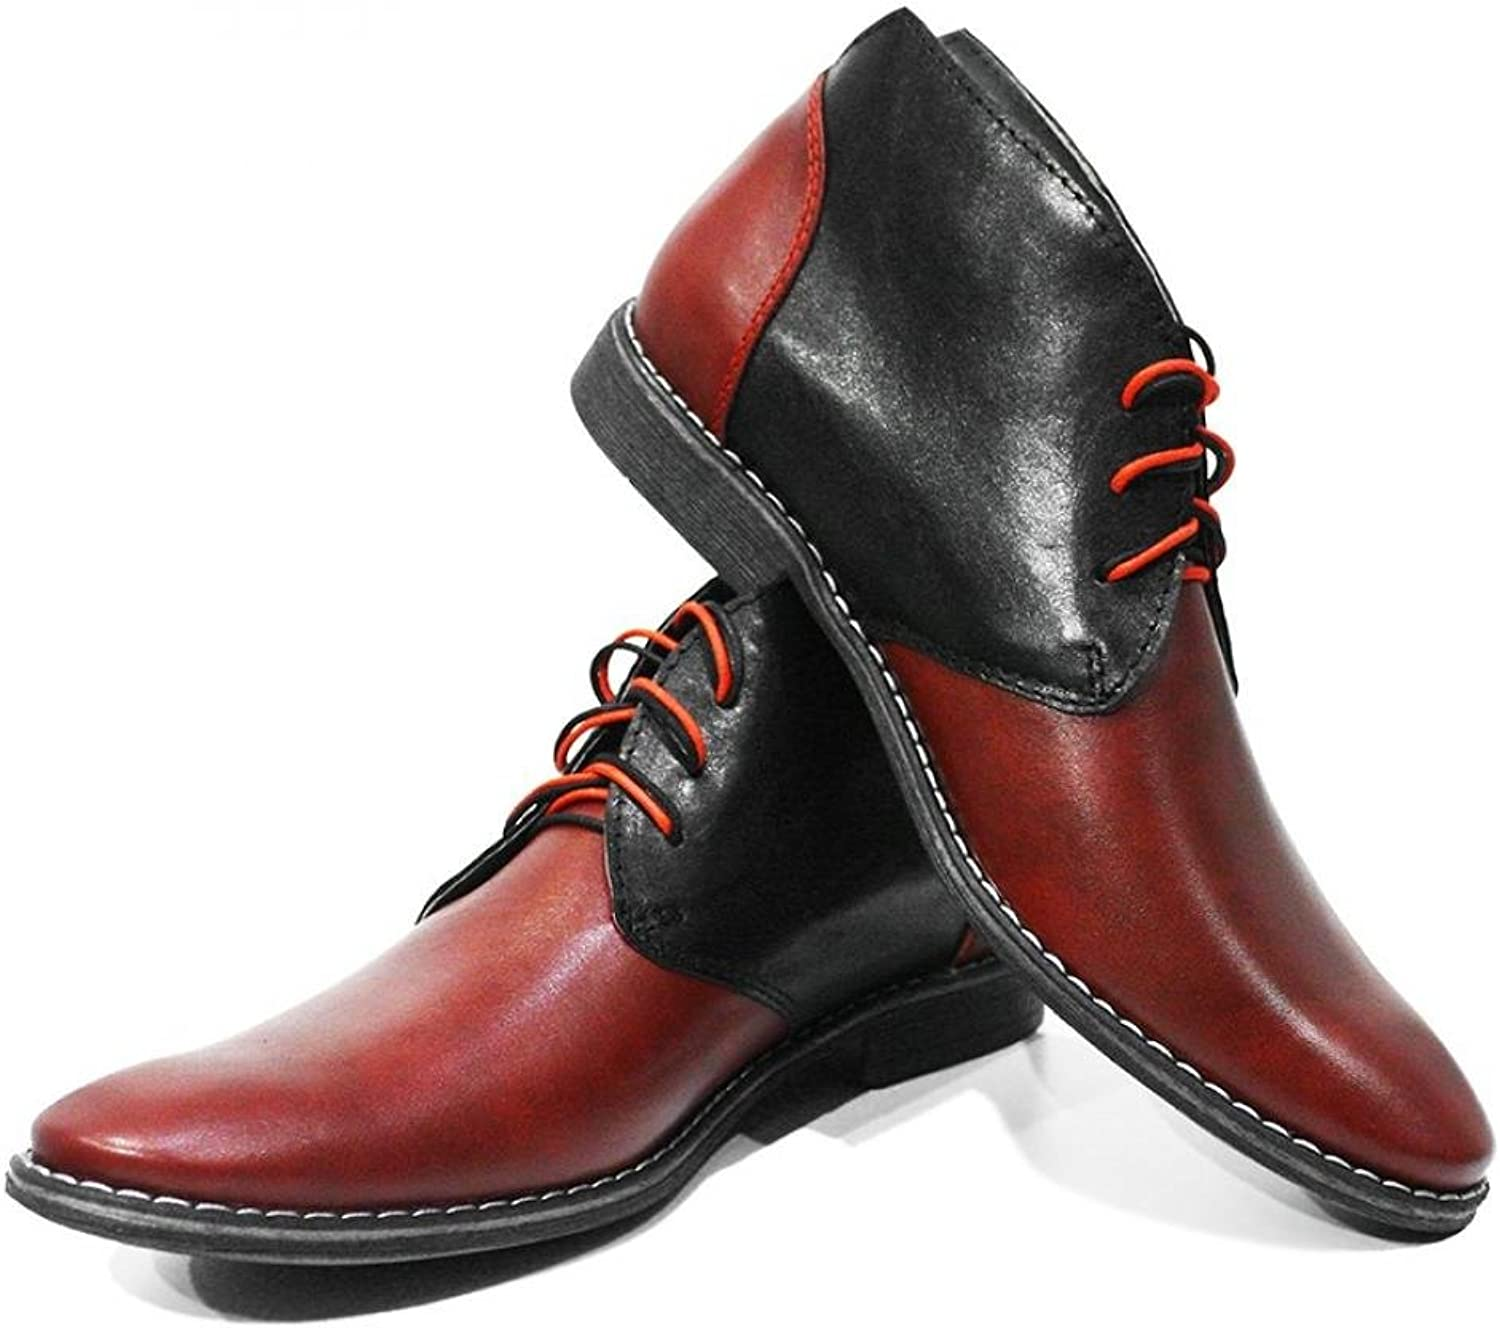 Peppeshoes Modello Pacomio - Handmade Italian Leather Mens color Red Ankle Chukka Boots - Cowhide Smooth Leather - Lace-Up